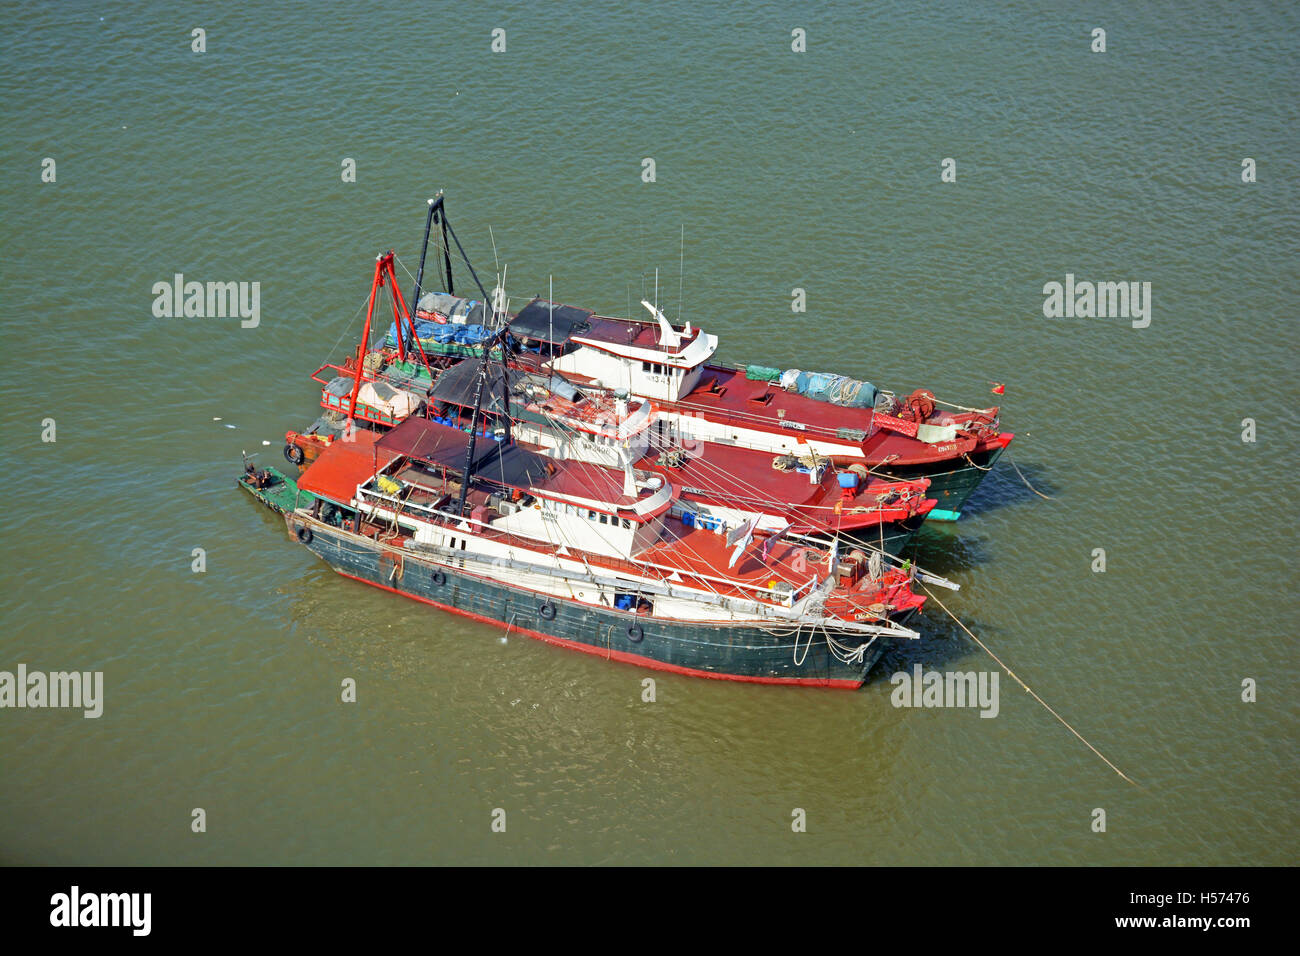 fishing boats on Pearl river Macau China - Stock Image